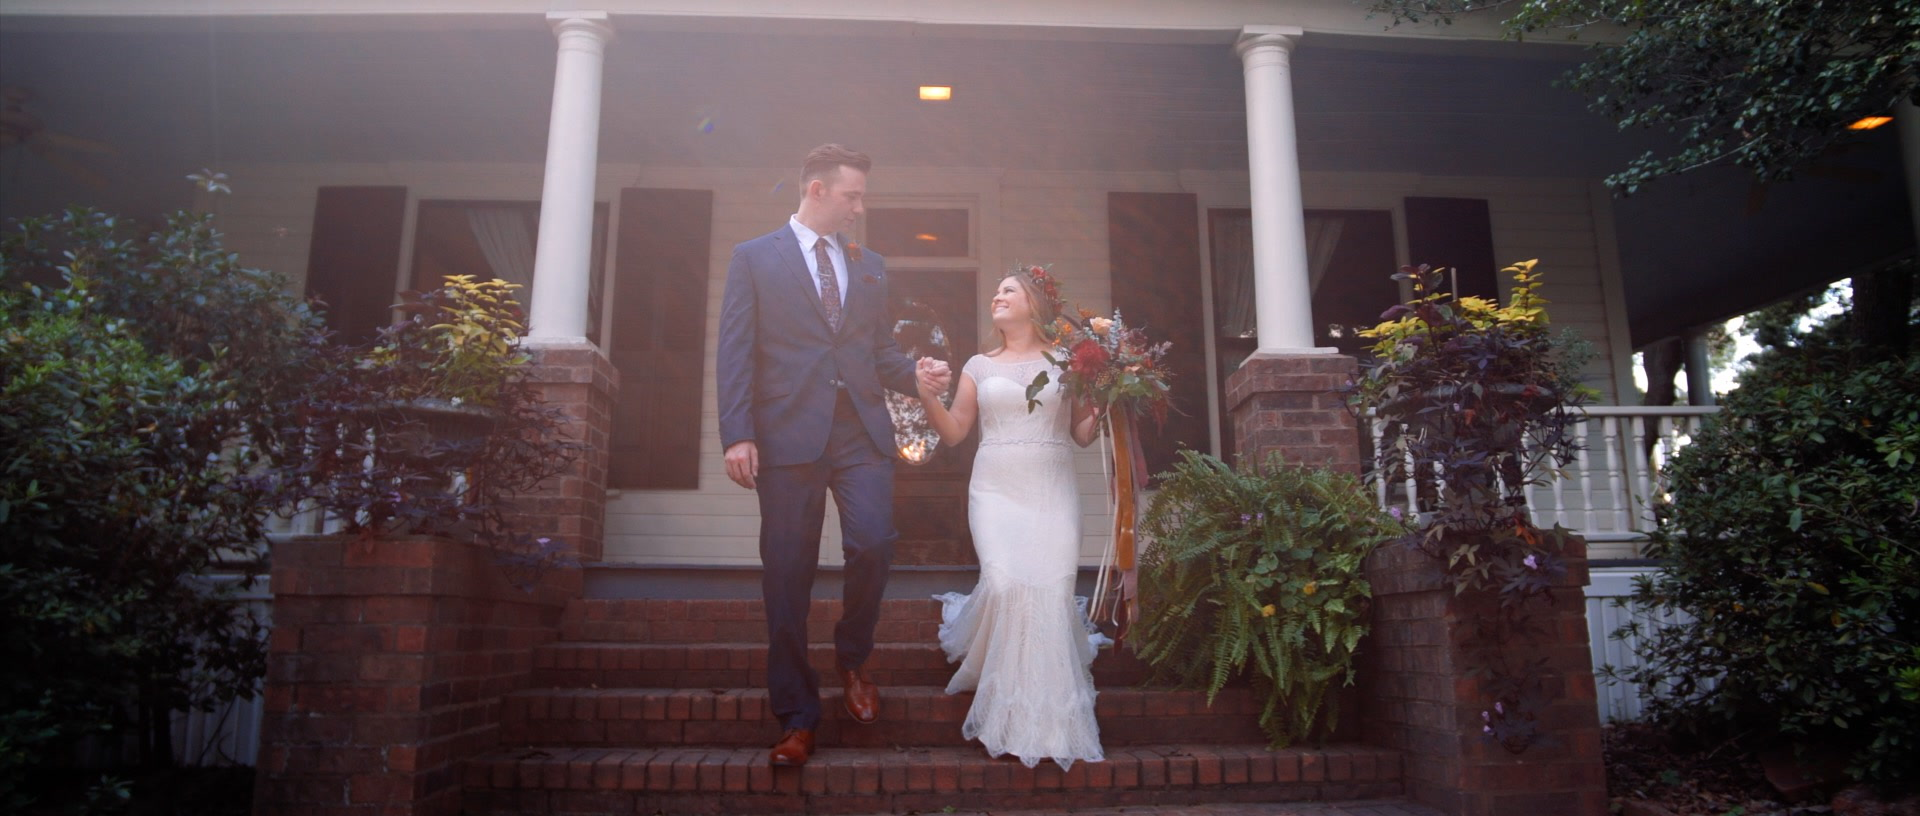 Dan + Kara | Tomball, Texas | Chandelier Grove